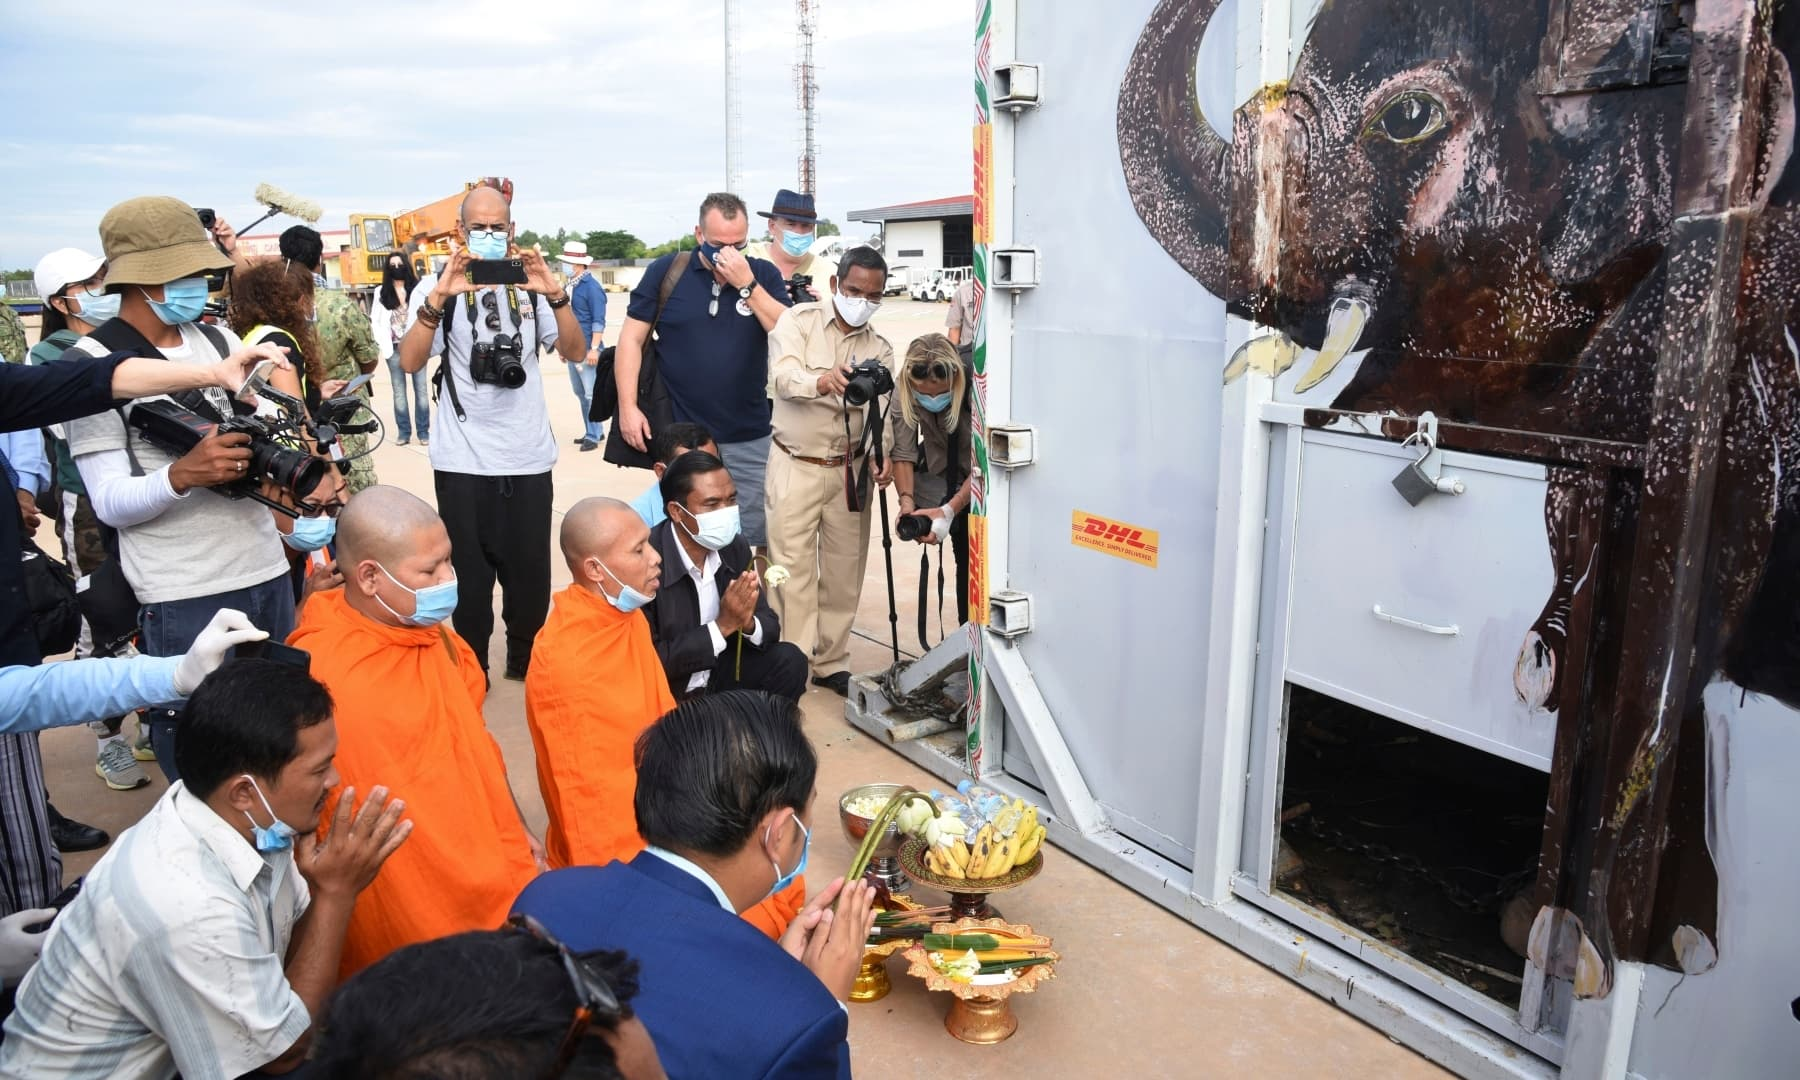 The crate containing Kaavan is blessed by Buddhist monks, centre, during his arrival at Siem Reap International Airport from Pakistan, Monday. — AP